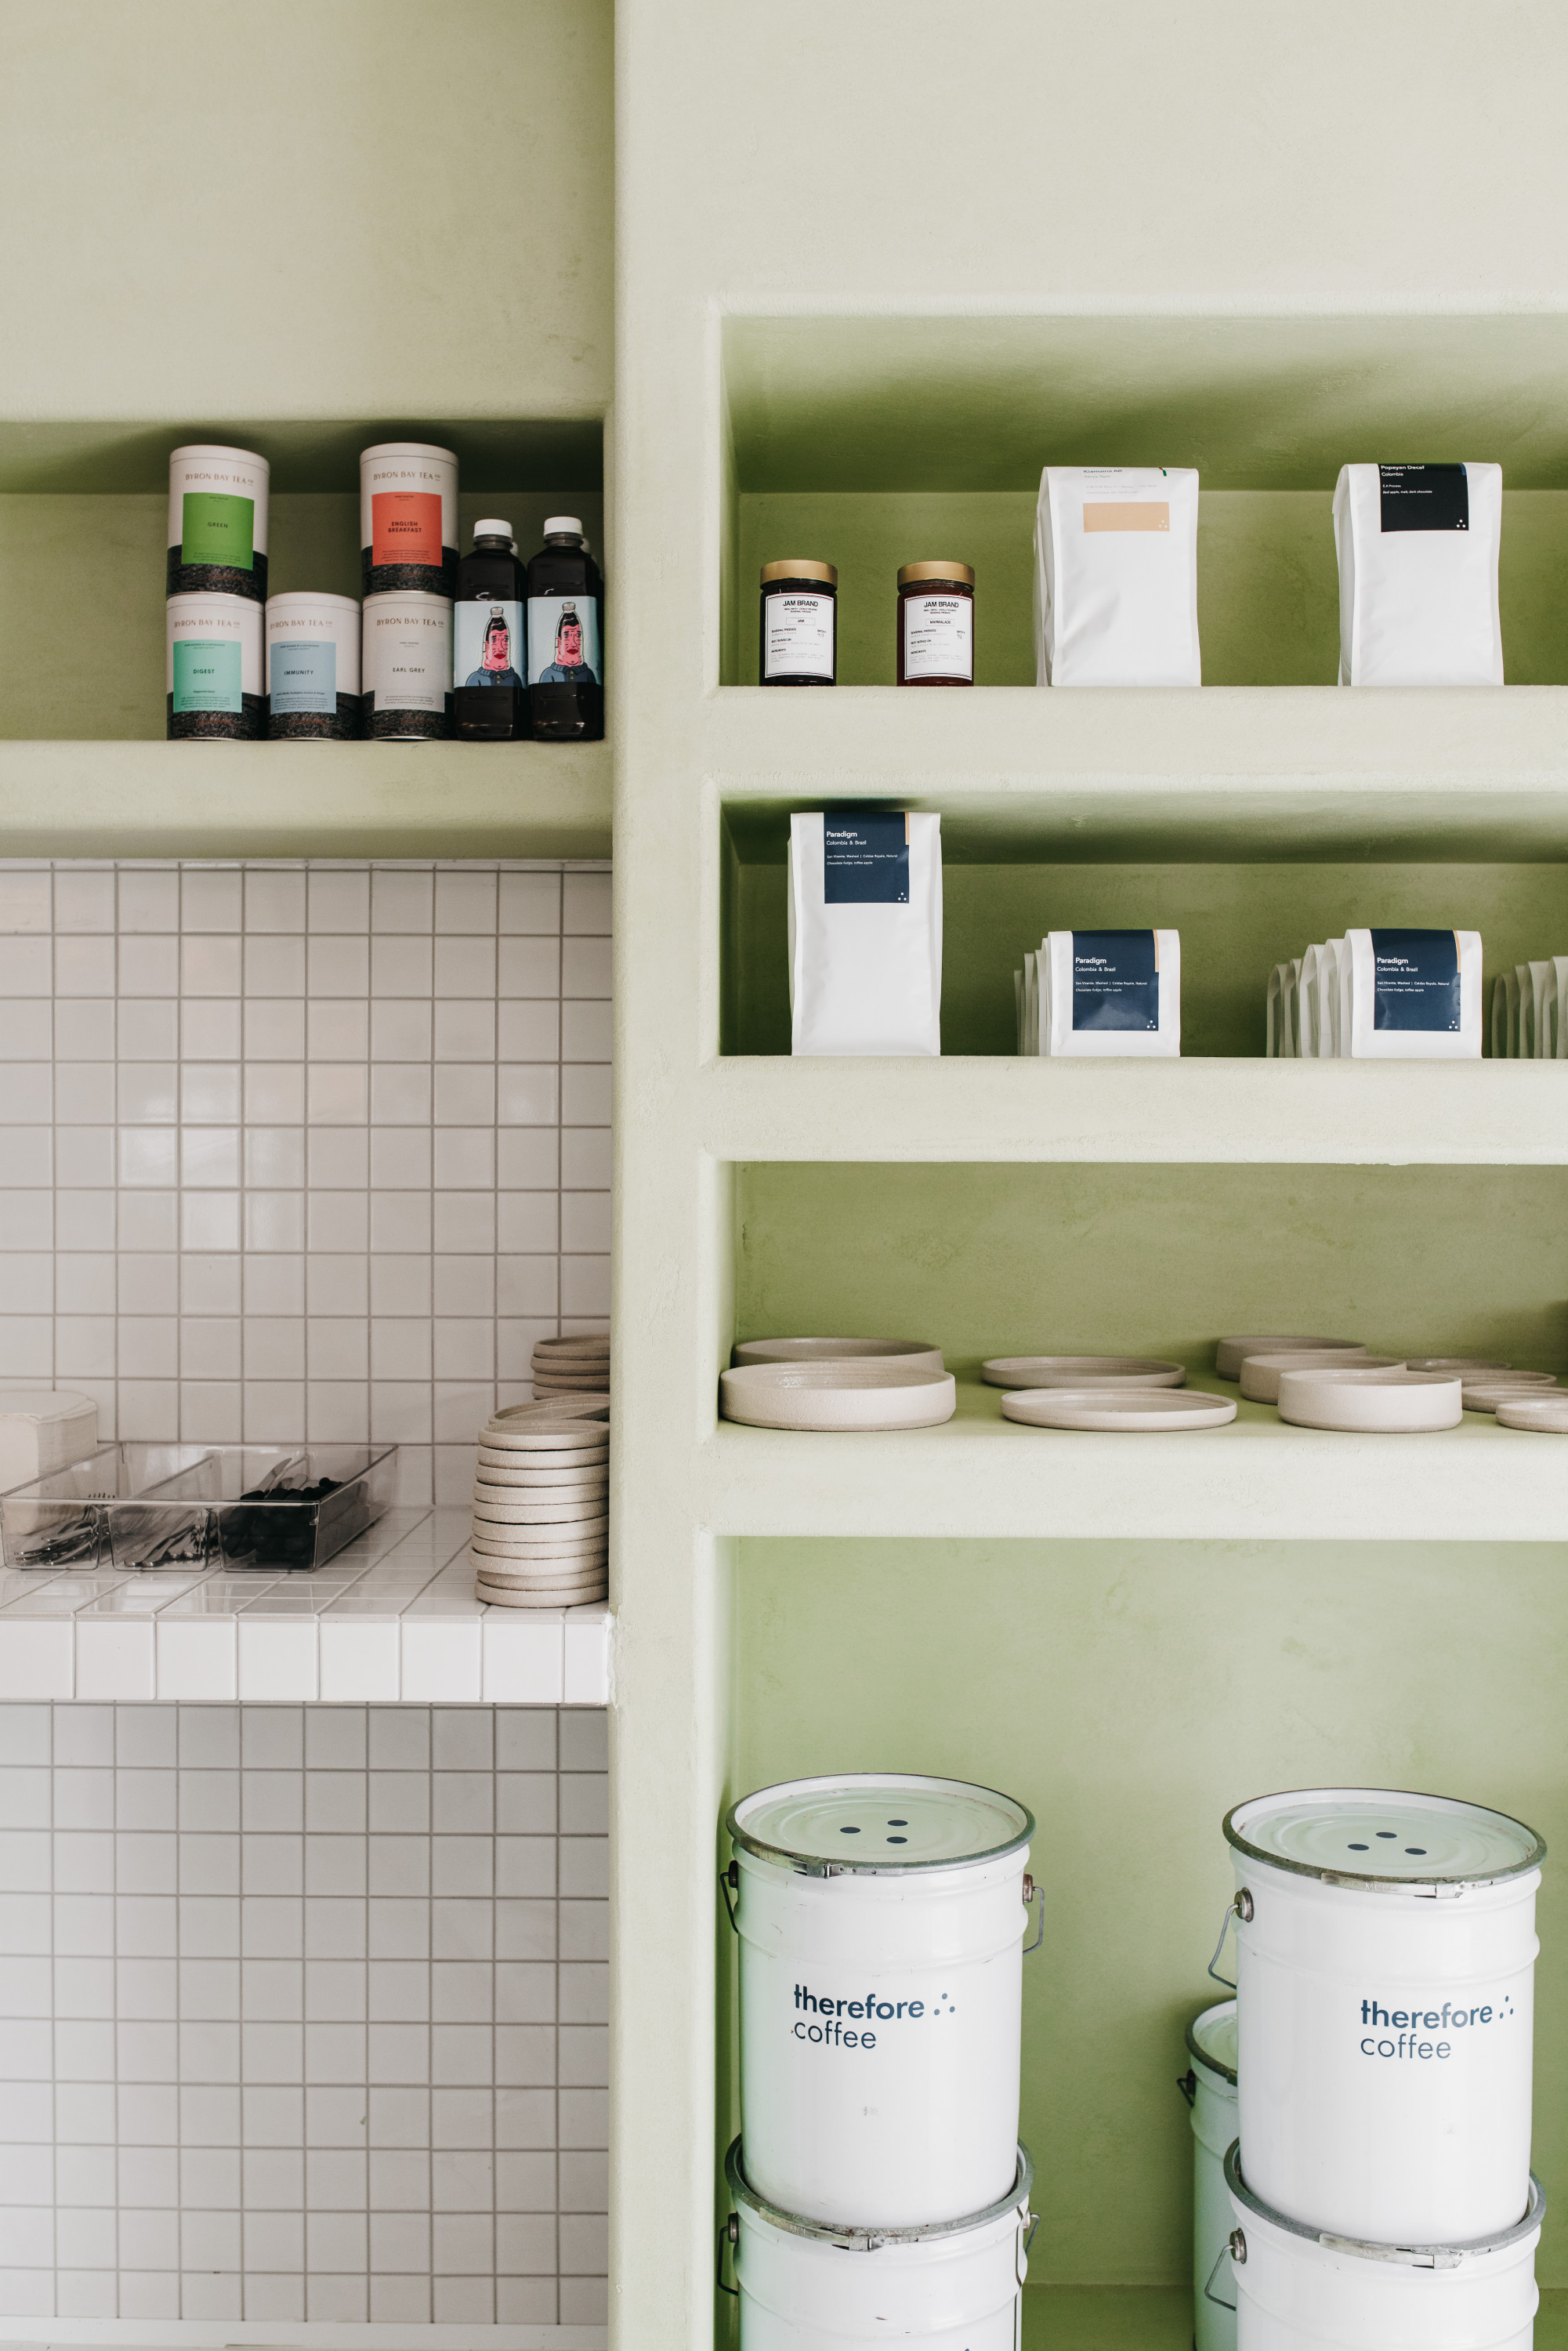 A shot of shelves stacked with various tins and containers.